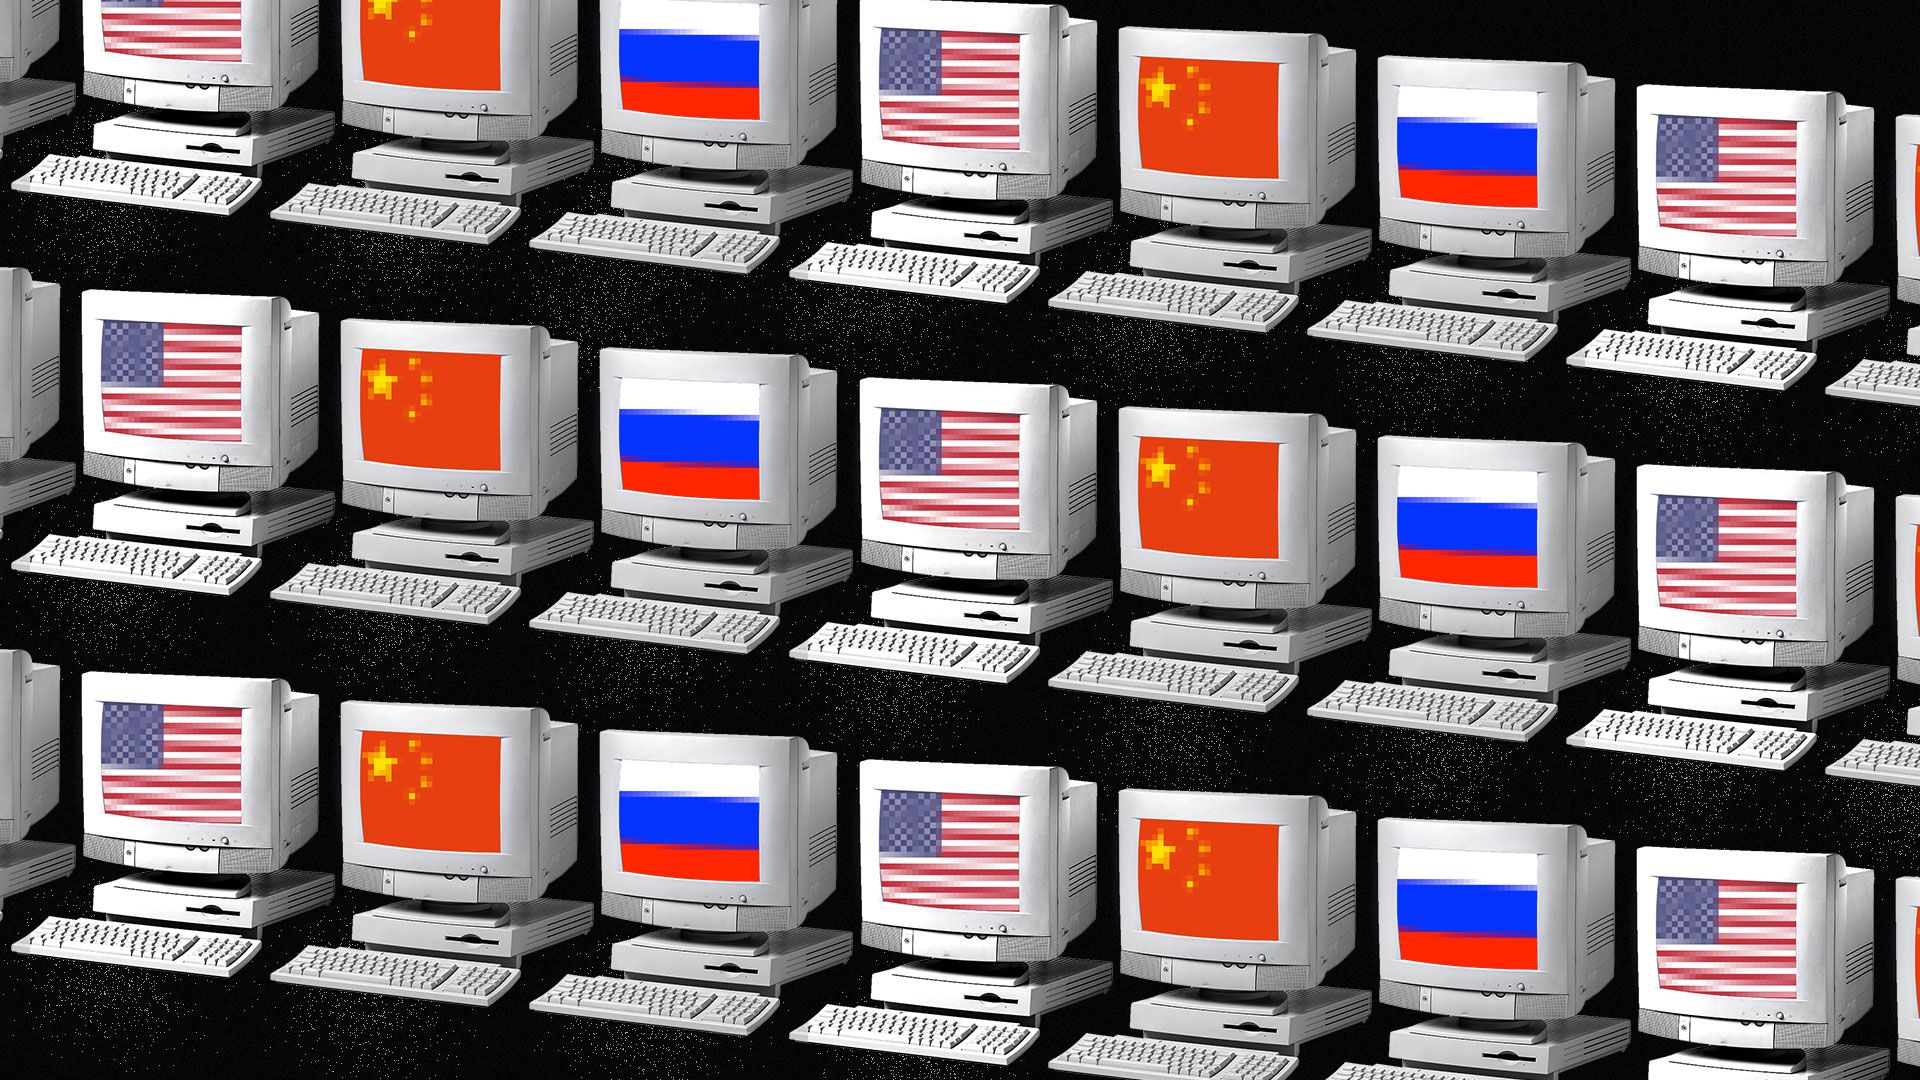 Computer screens with the Russian, Chinese and American flags on the monitor